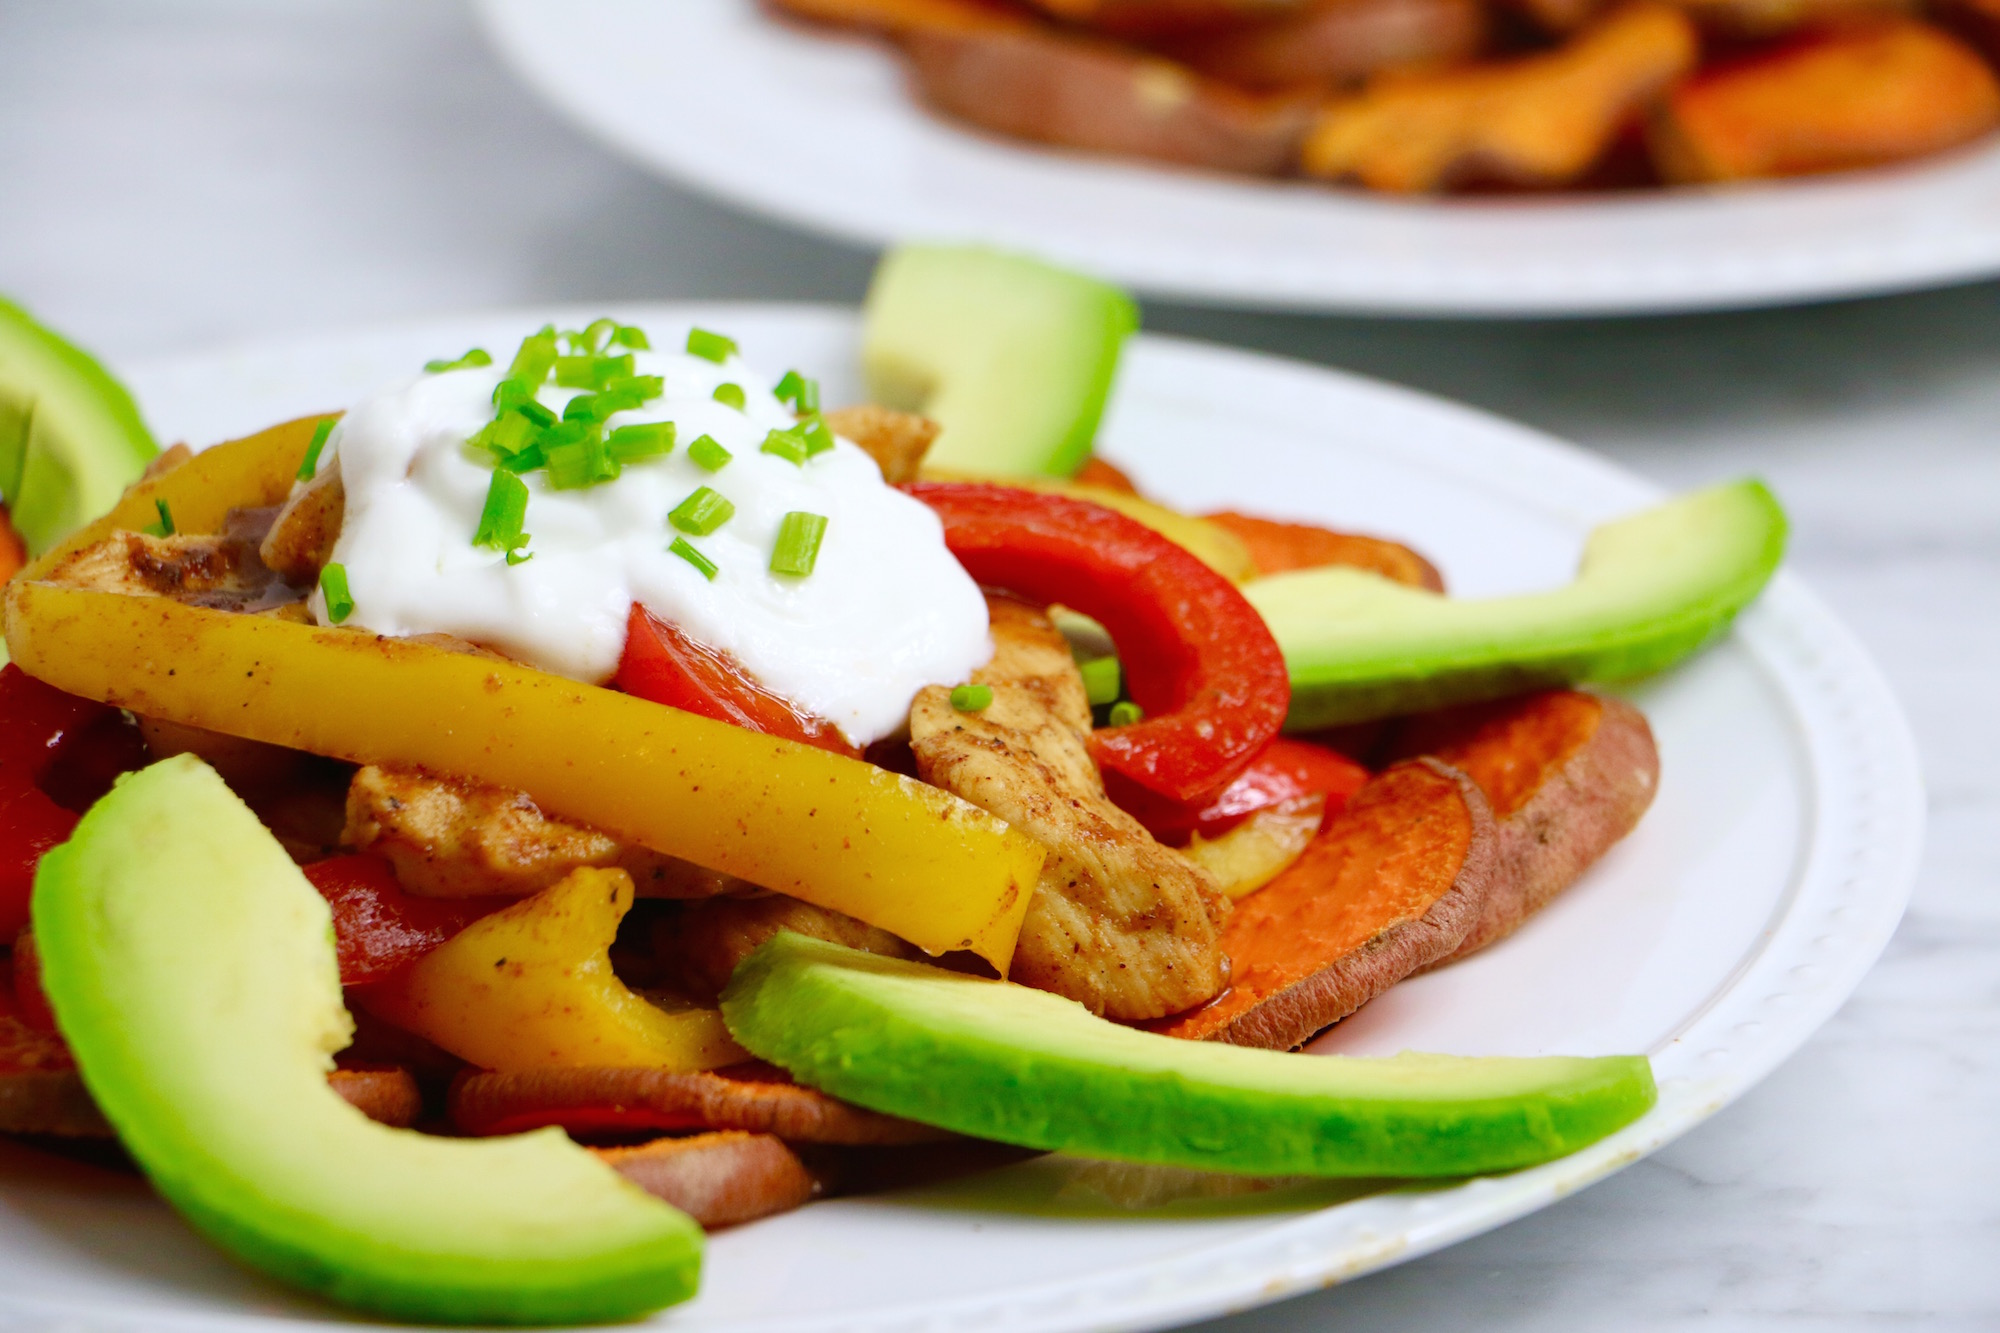 Healthy Chicken Fajita Nachos made with Baked Sweet Potato Chips and topped with organic chicken, red and yellow bell peppers, avocado, and greek yogurt. Gluten-free + can be made vegan by swapping beans. Takes 30 minutes to make!